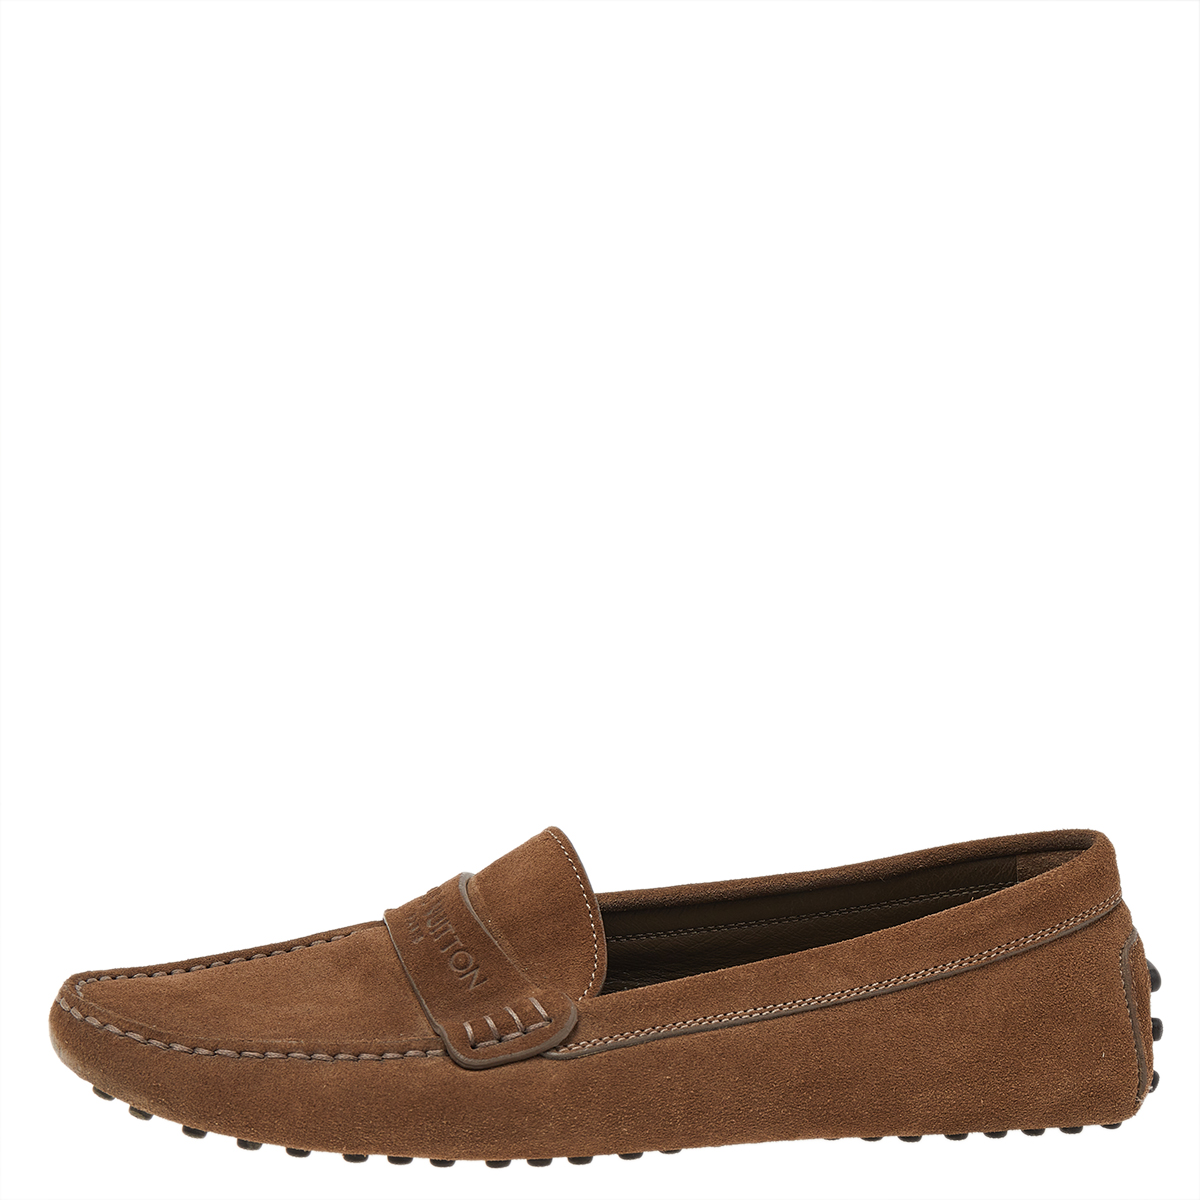 Louis Vuitton Brown Suede Slip On Loafers Size 37